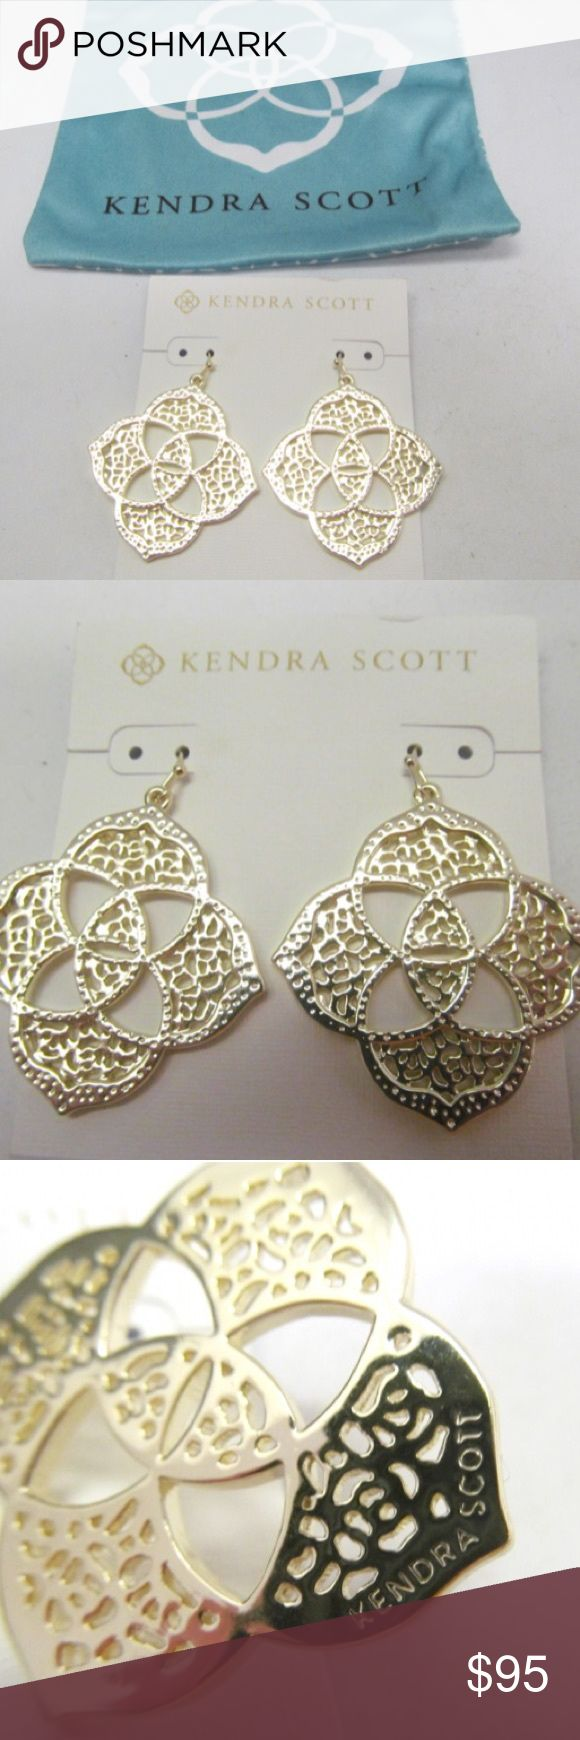 NWT Kendra Scott Filigree Earrings Brand new Kendra Scott earrings!  They are absolutely gorgeous. Unfortunately I don't have much room to budge on price, so price is firm. Kendra Scott Jewelry Earrings